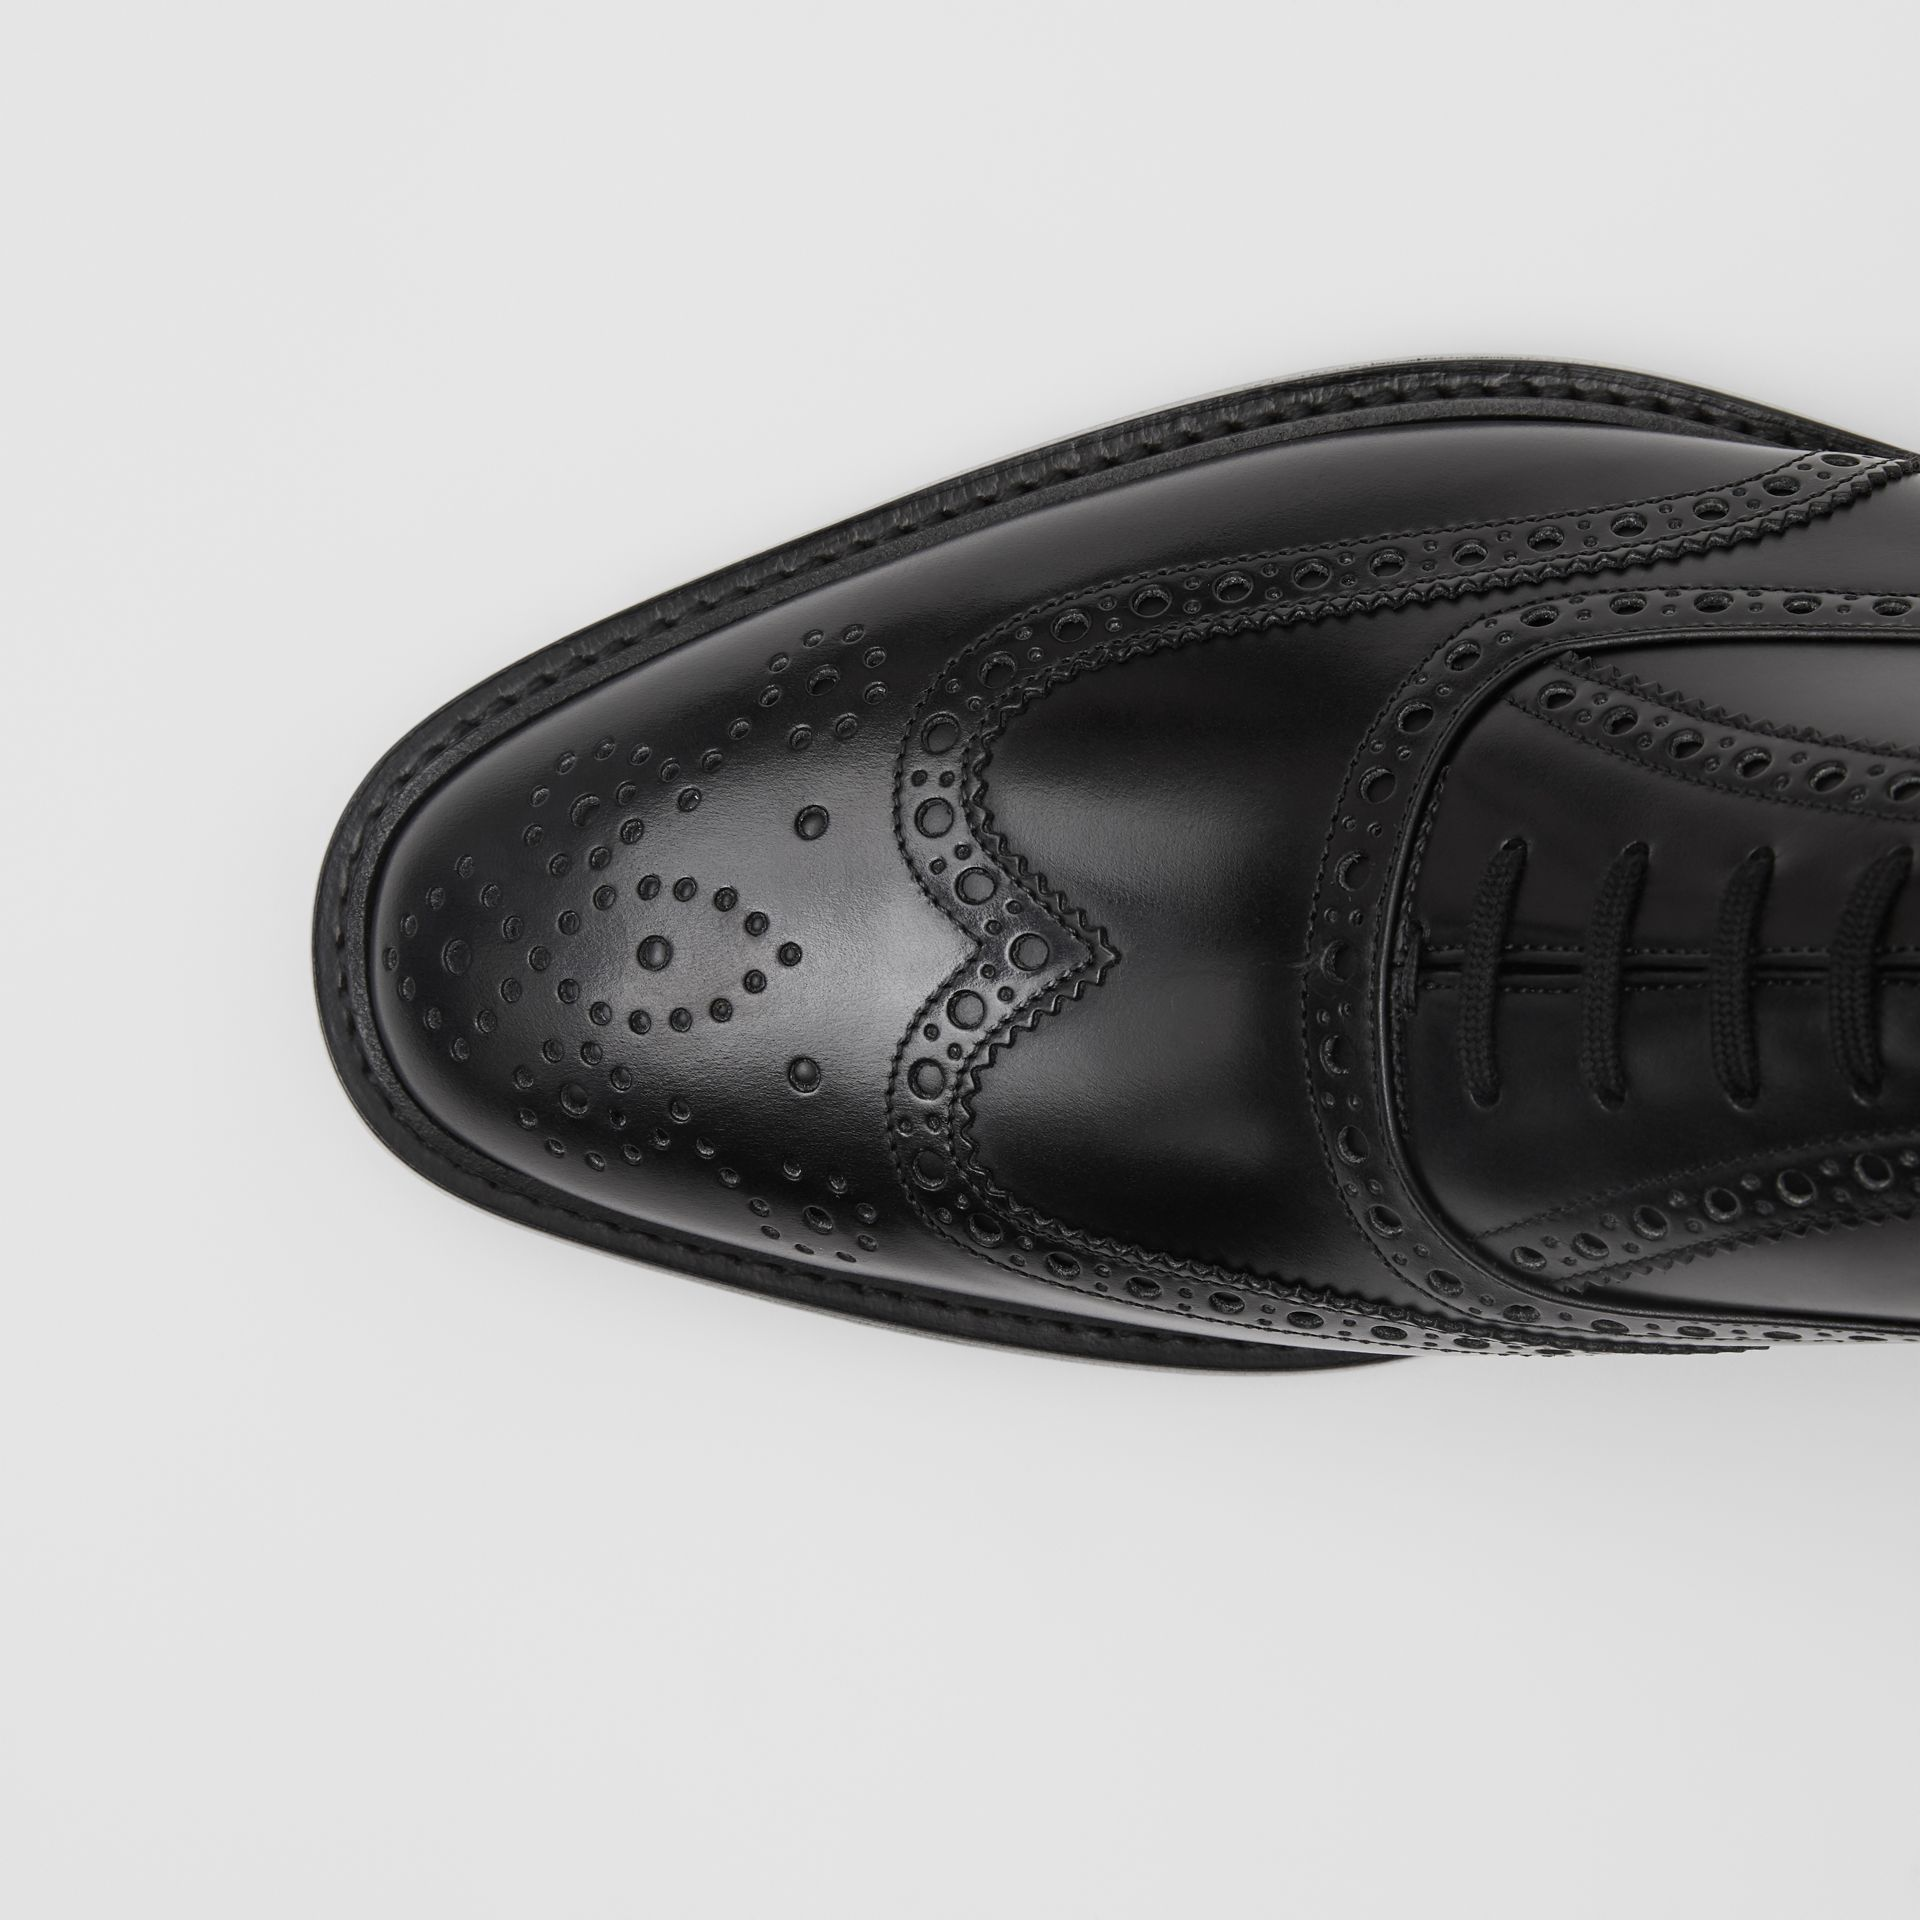 D-ring Detail Patent Leather Oxford Brogues in Black - Men | Burberry - gallery image 1